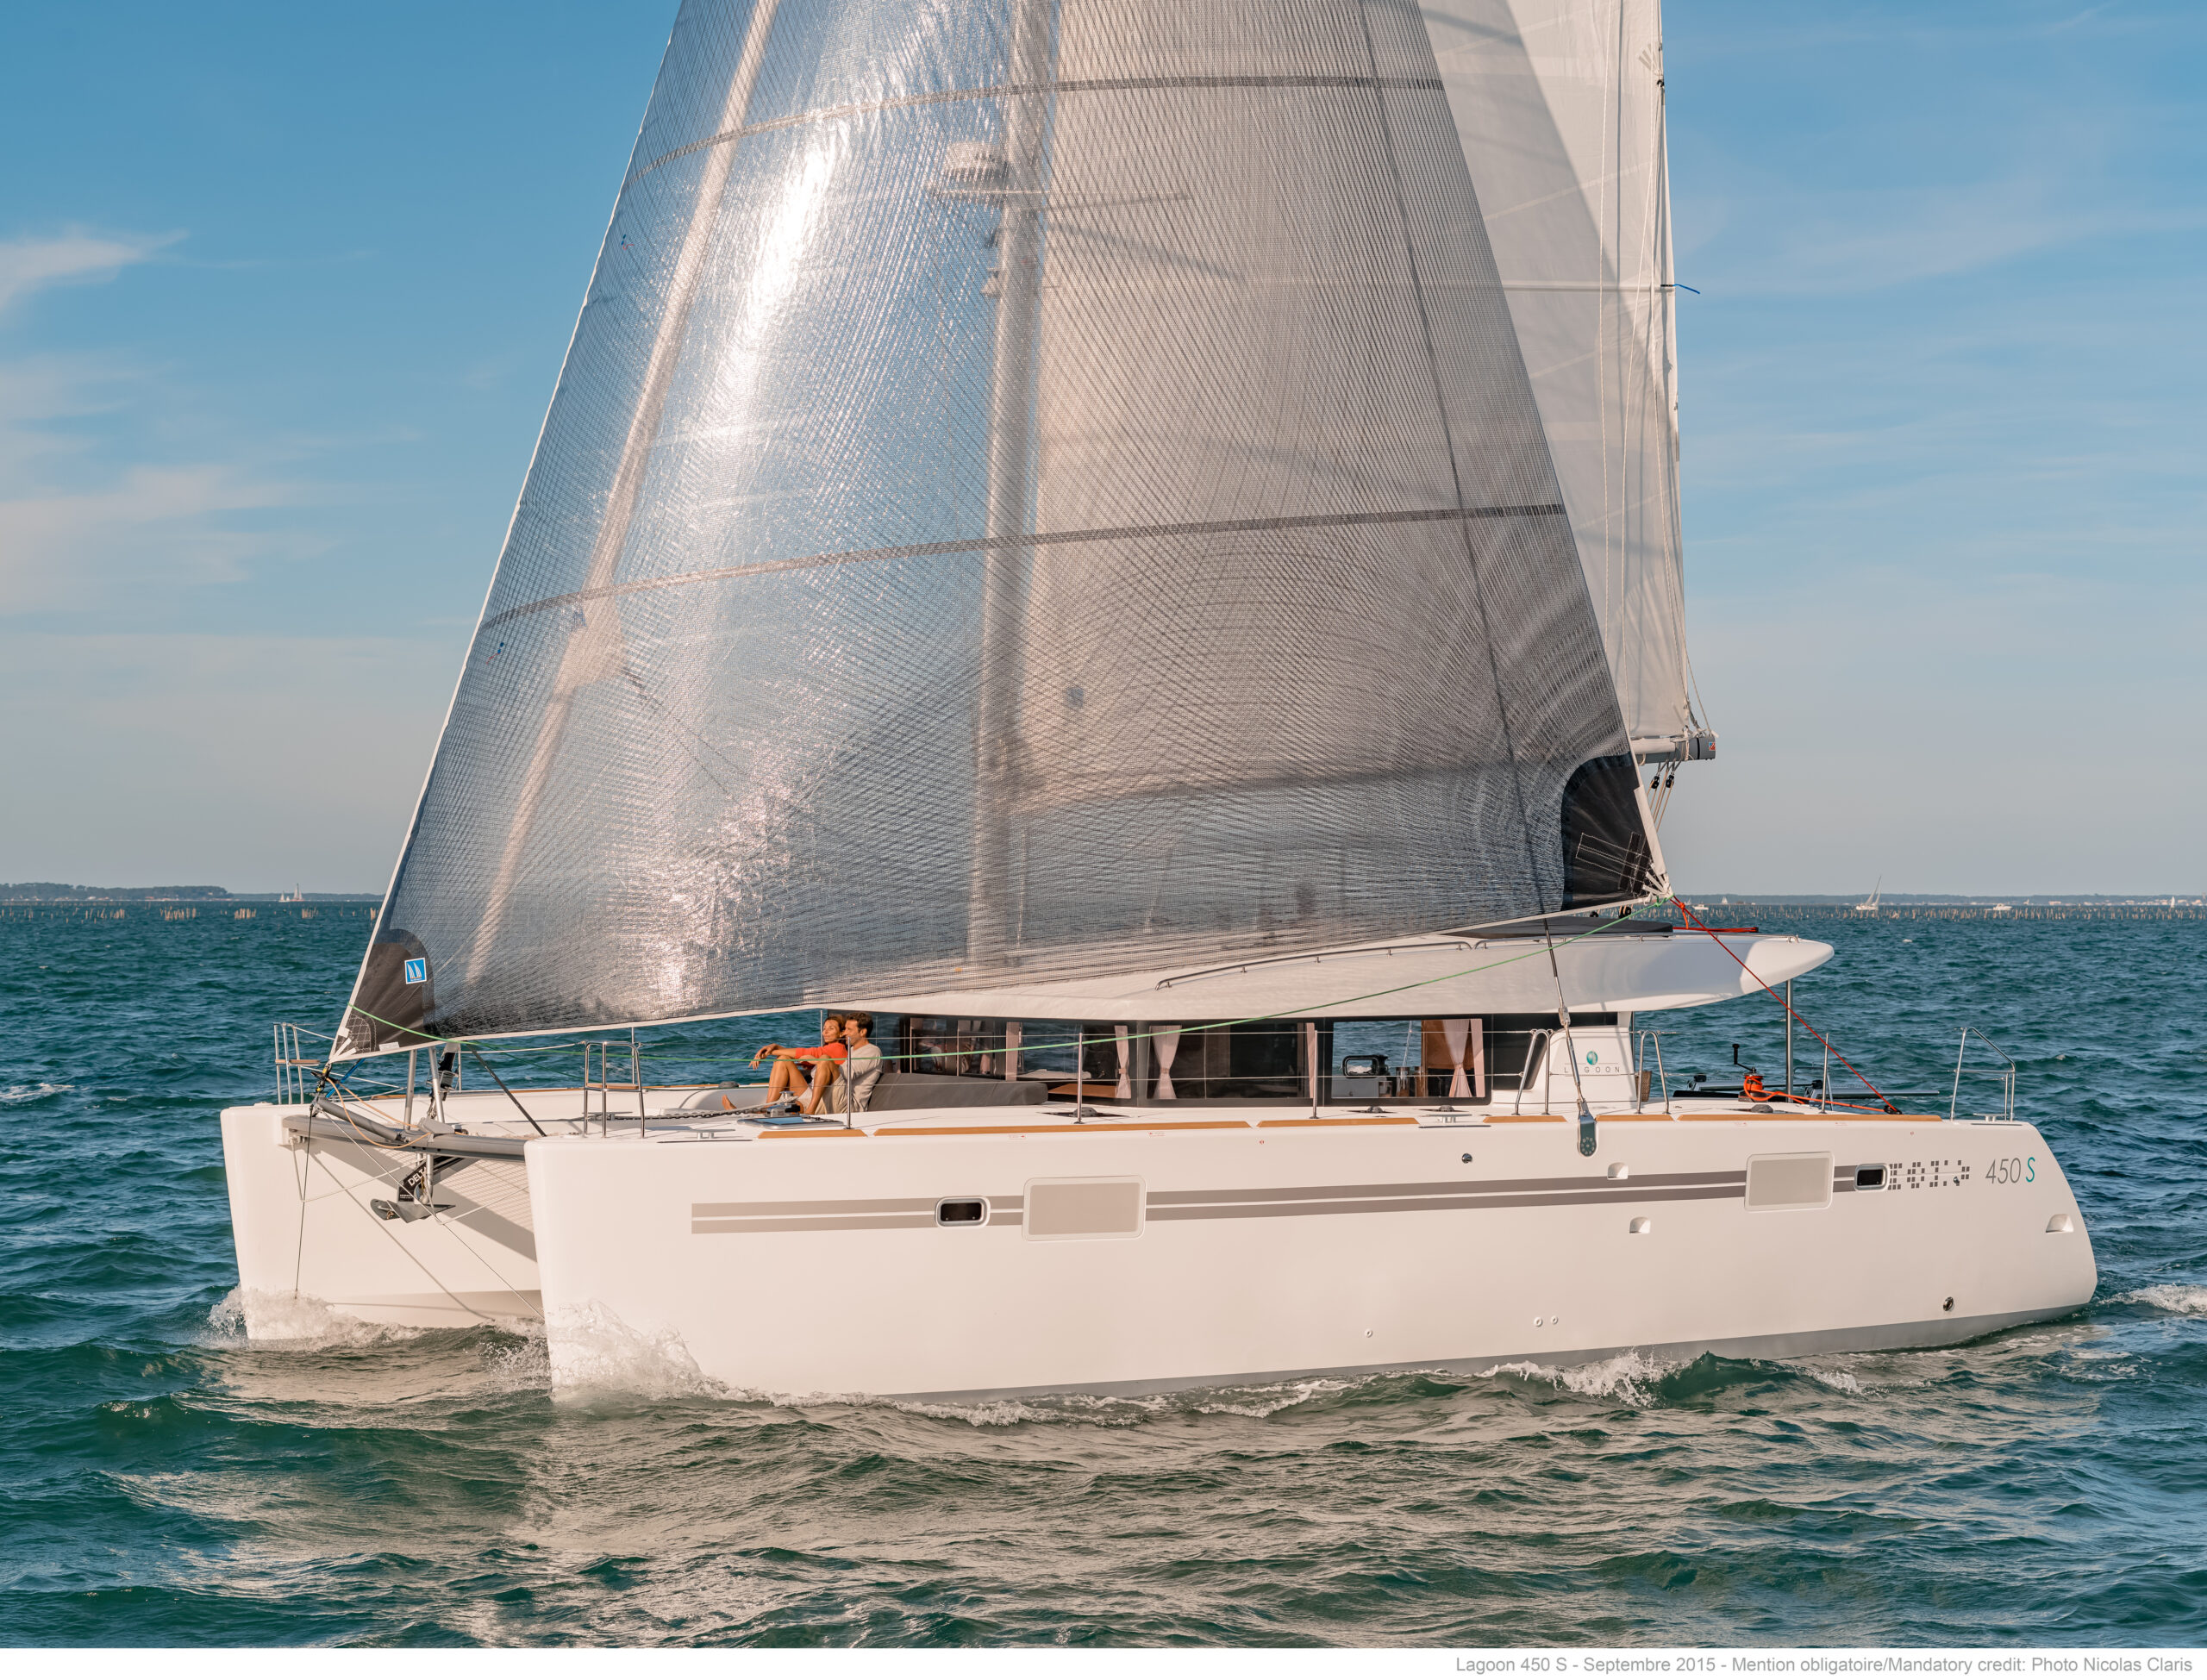 Own 50% of a Lagoon 450S on Sydney Harbour